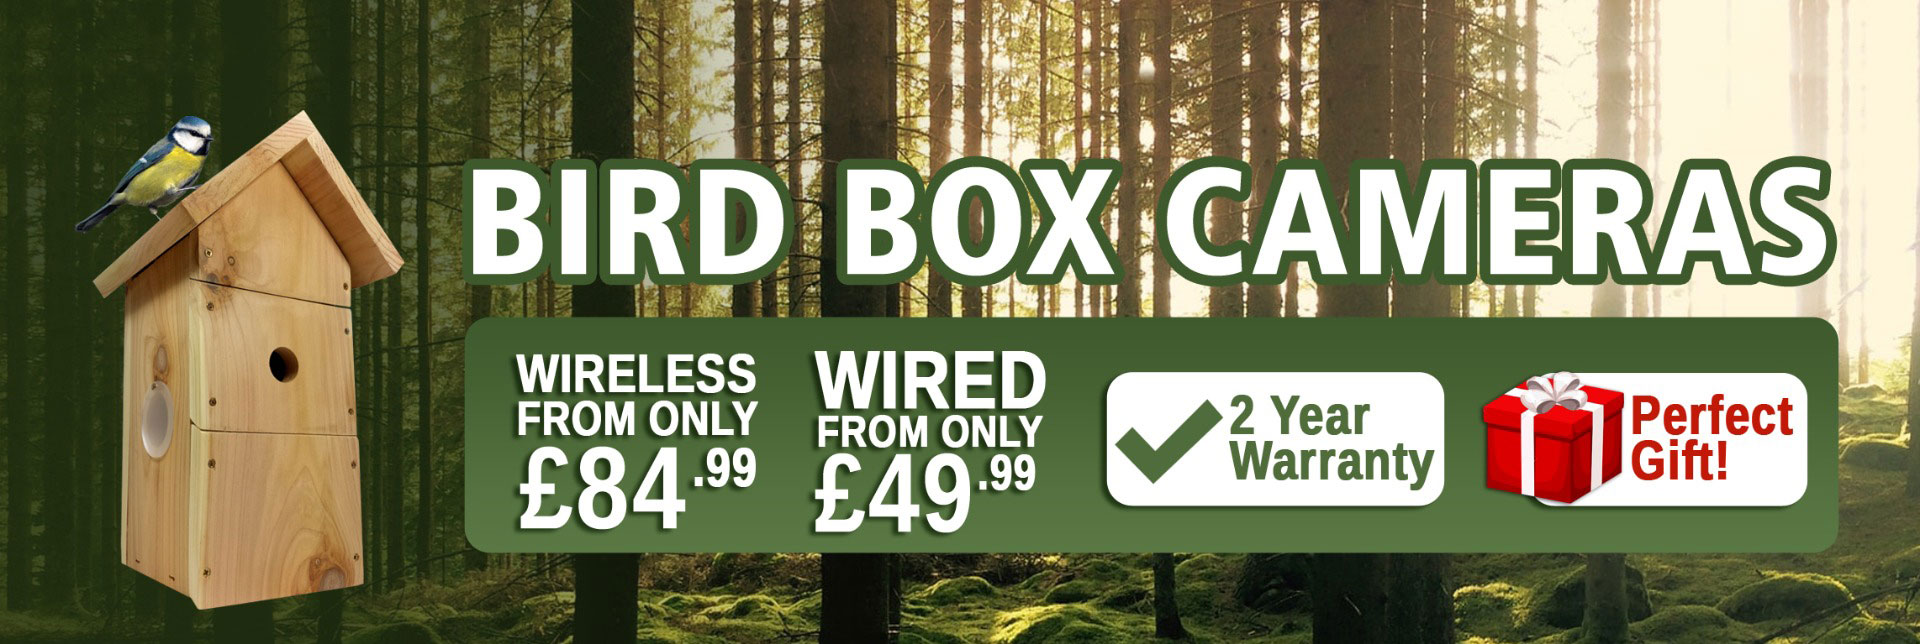 Bird Box Cameras - Wired, Wireless & WiFi, & HD